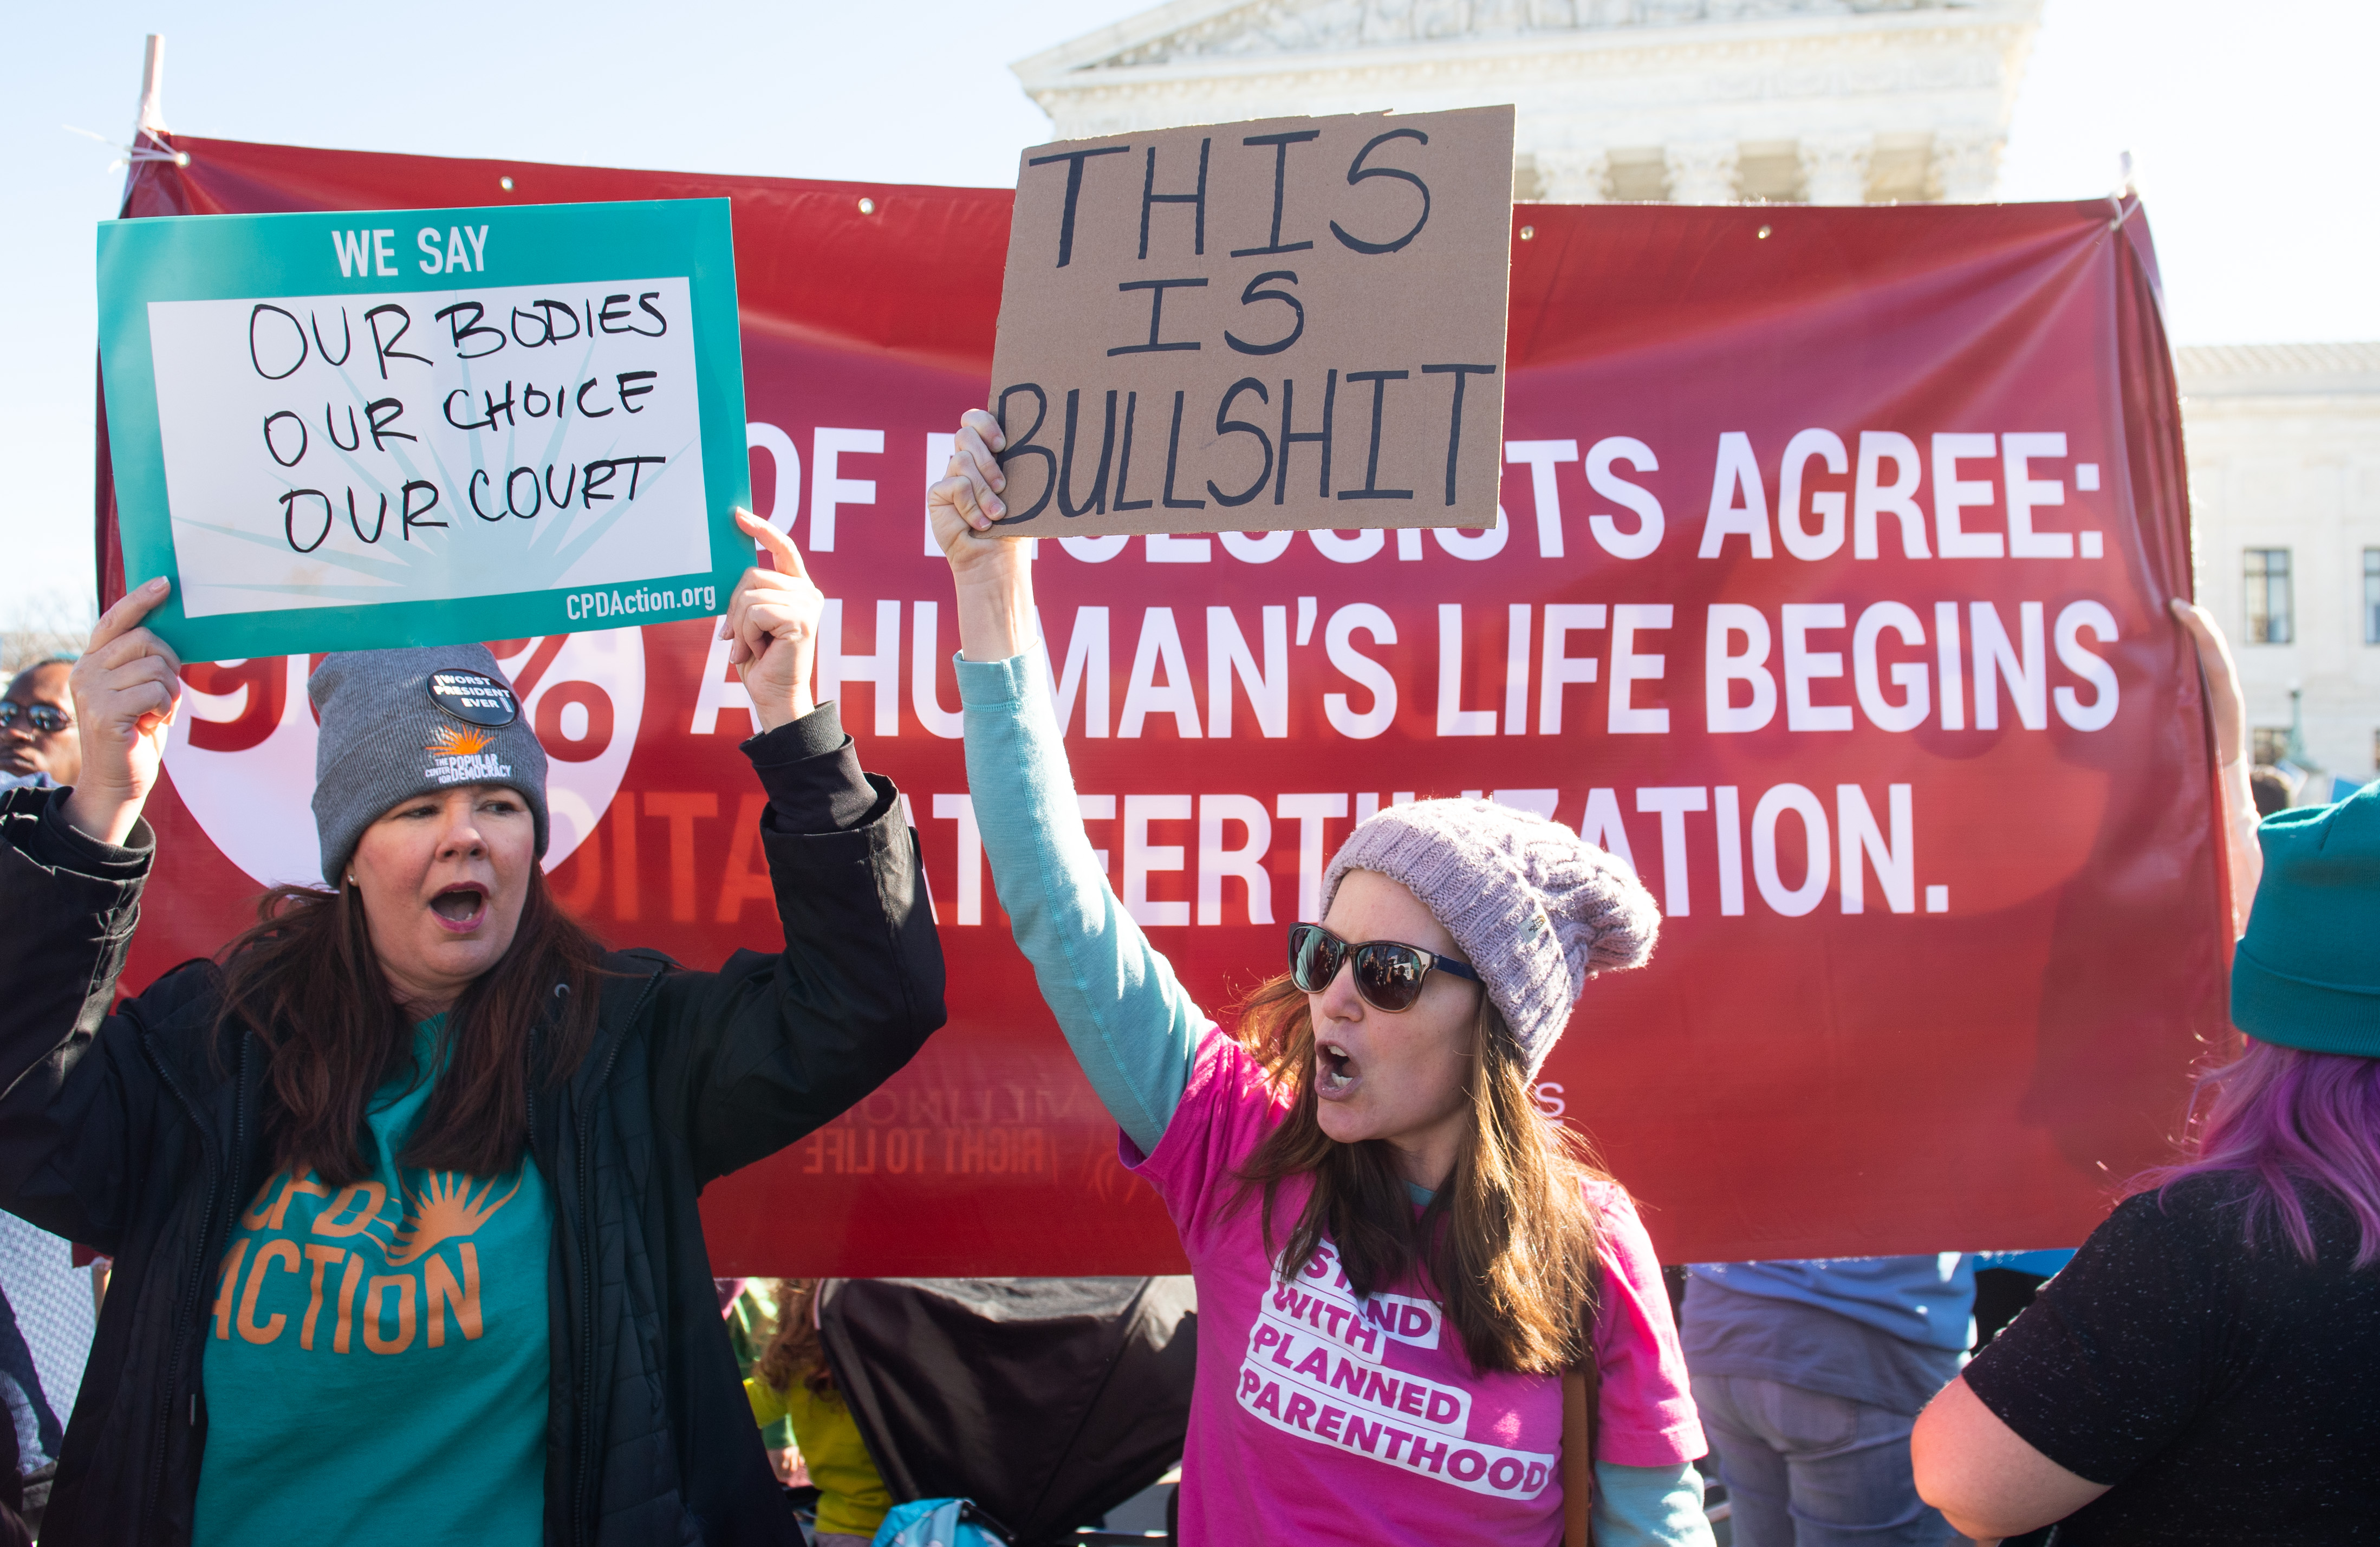 Anti-abortion protesters and pro-choice activists supporting legal access to abortion protest alongside each other during a demonstration outside the US Supreme Court in Washington, DC, March 4, 2020, as the Court hears oral arguments regarding a Louisiana law about abortion access in the first major abortion case in years. - The United States Supreme Court on Wednesday will hear what may be its most significant case in decades on the controversial subject of abortion. At issue is a state law in Louisiana which requires doctors who perform abortions to have admitting privileges at a nearby hospital. (Photo by SAUL LOEB / AFP) (Photo by SAUL LOEB/AFP via Getty Images)